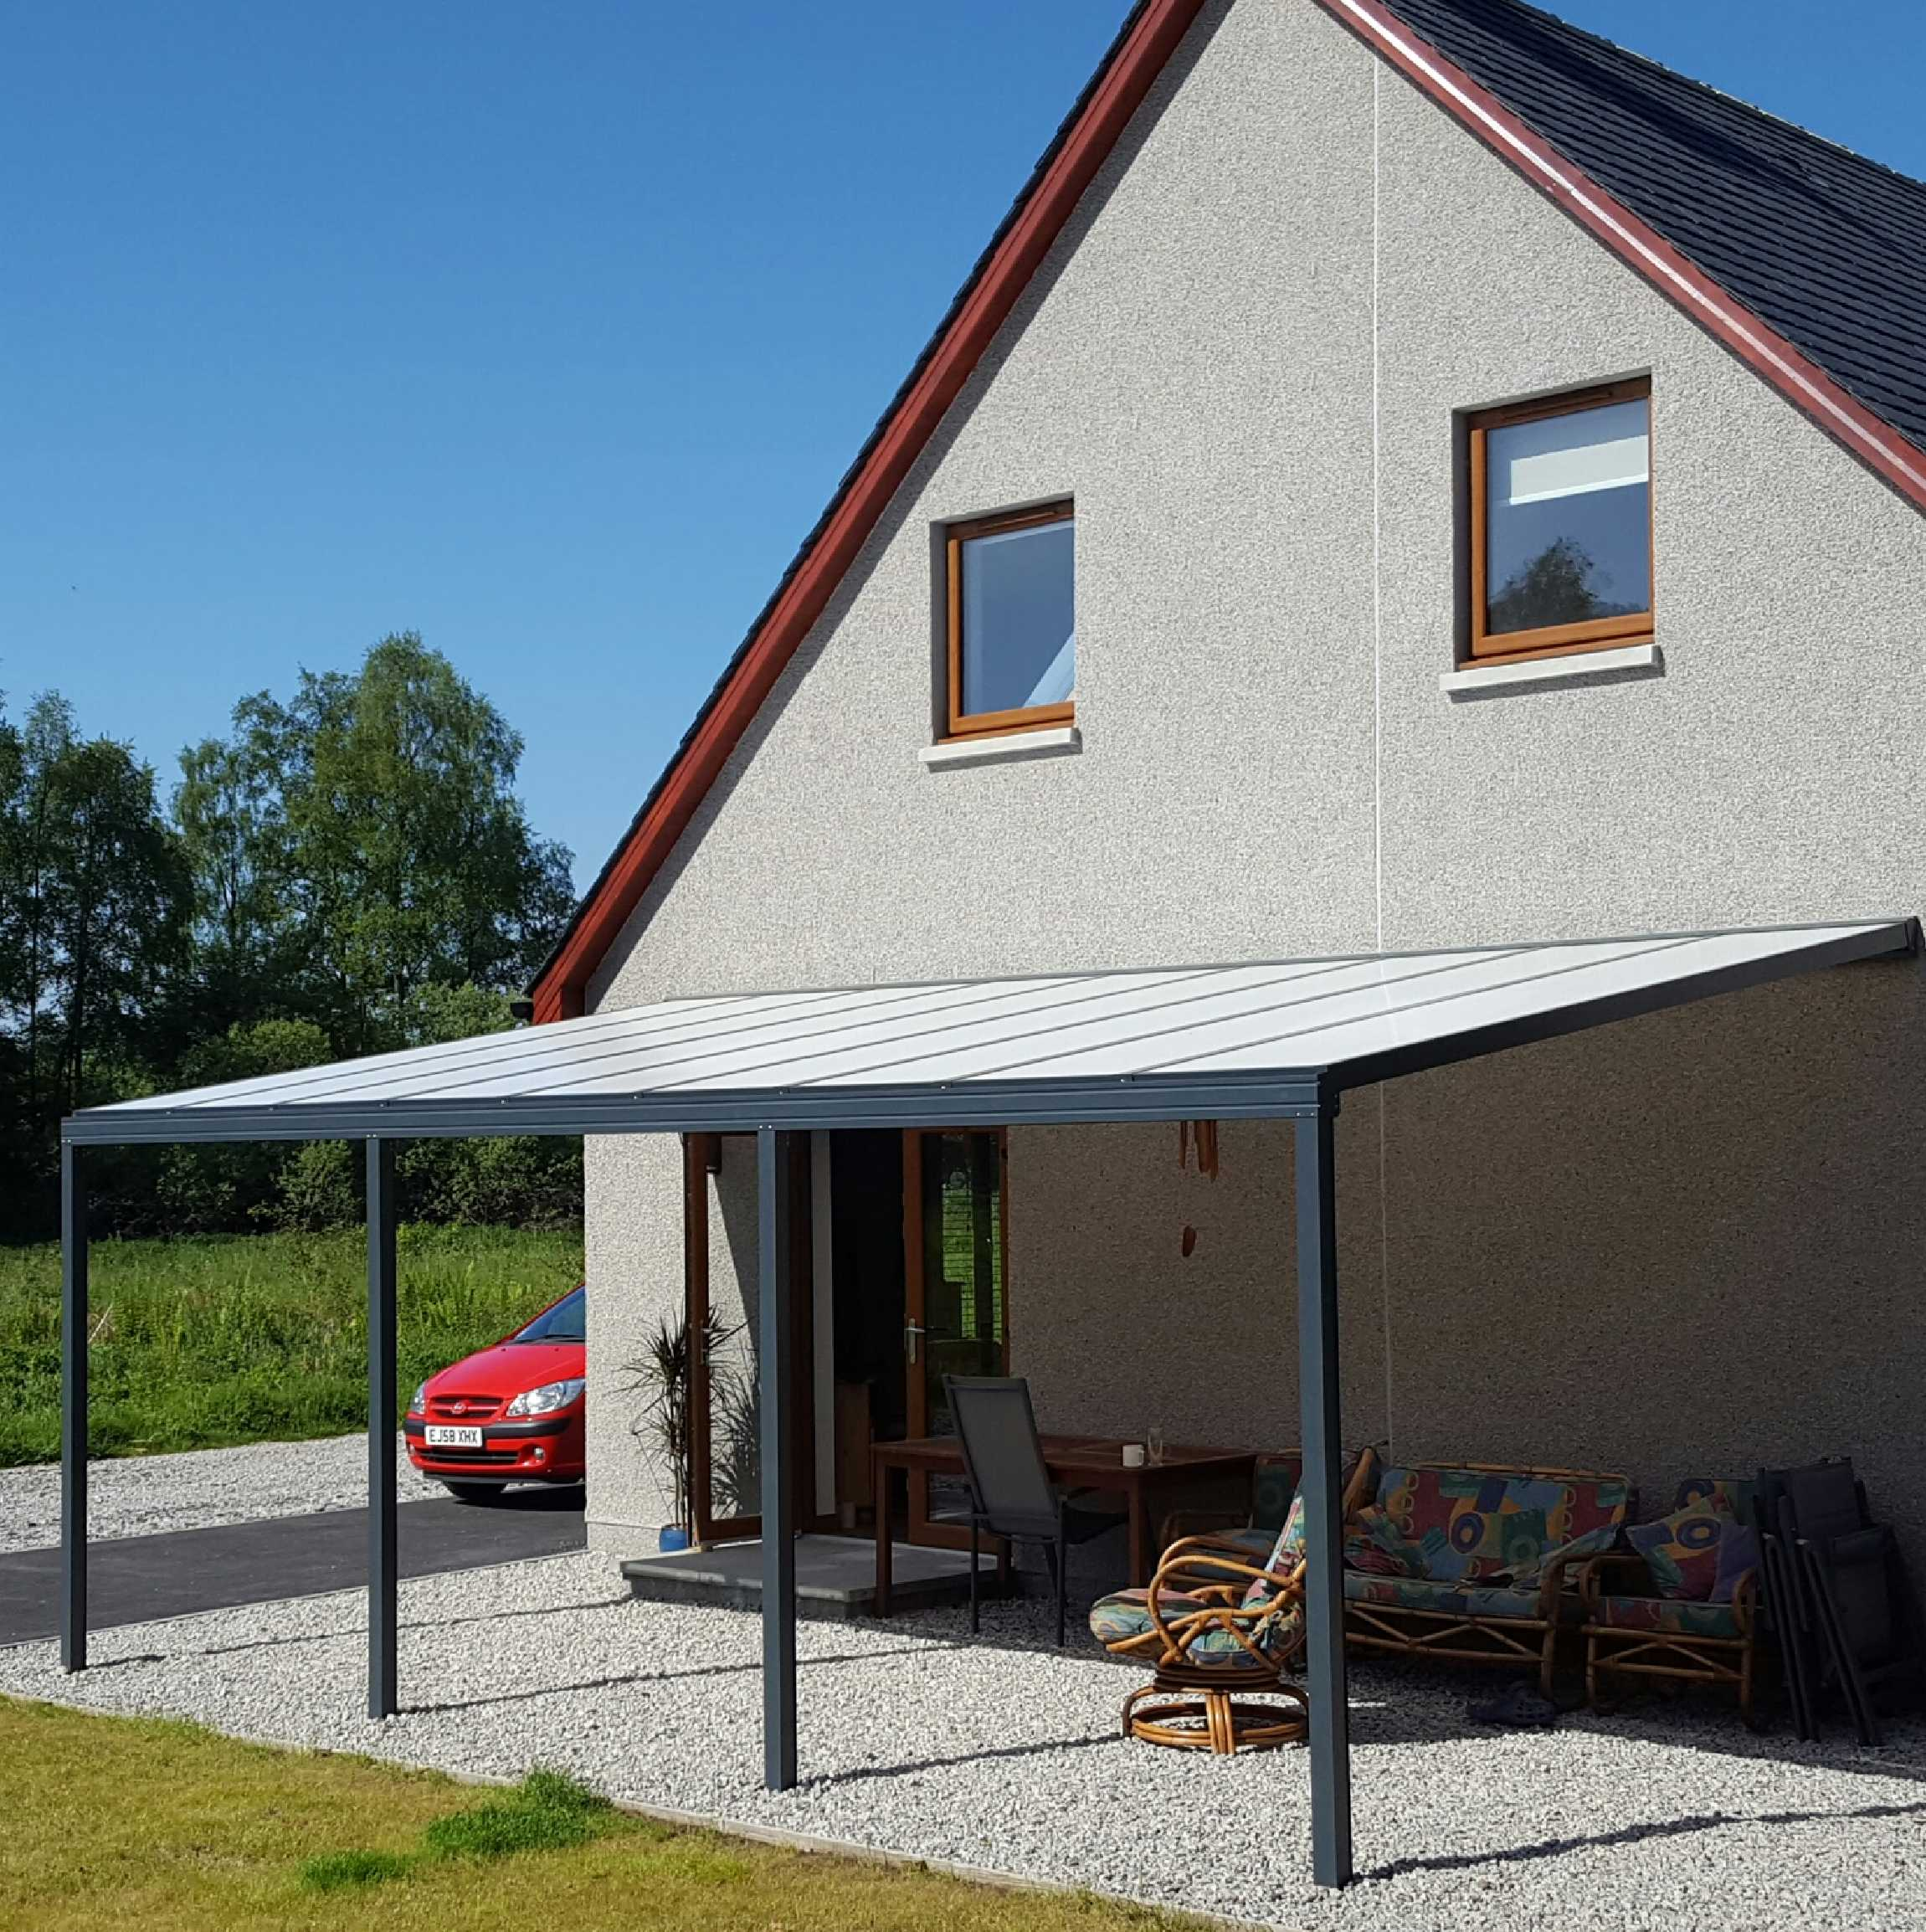 Great selection of Omega Smart Lean-To Canopy, Anthracite Grey, 16mm Polycarbonate Glazing - 2.8m (W) x 3.5m (P), (2) Supporting Posts